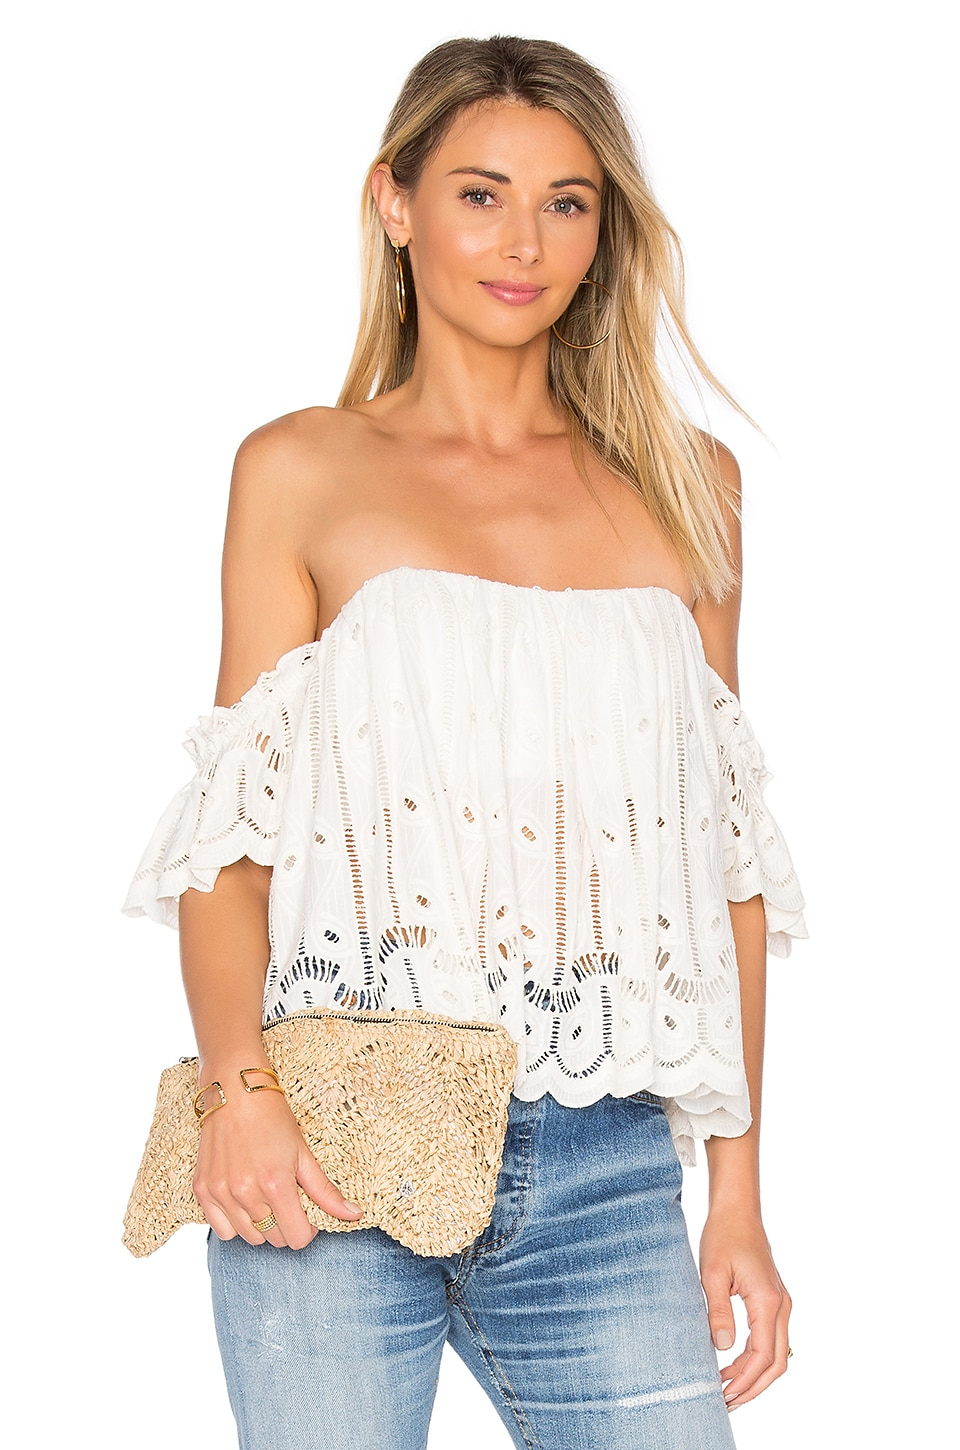 Tularosa Amelia Crop Top in Shell